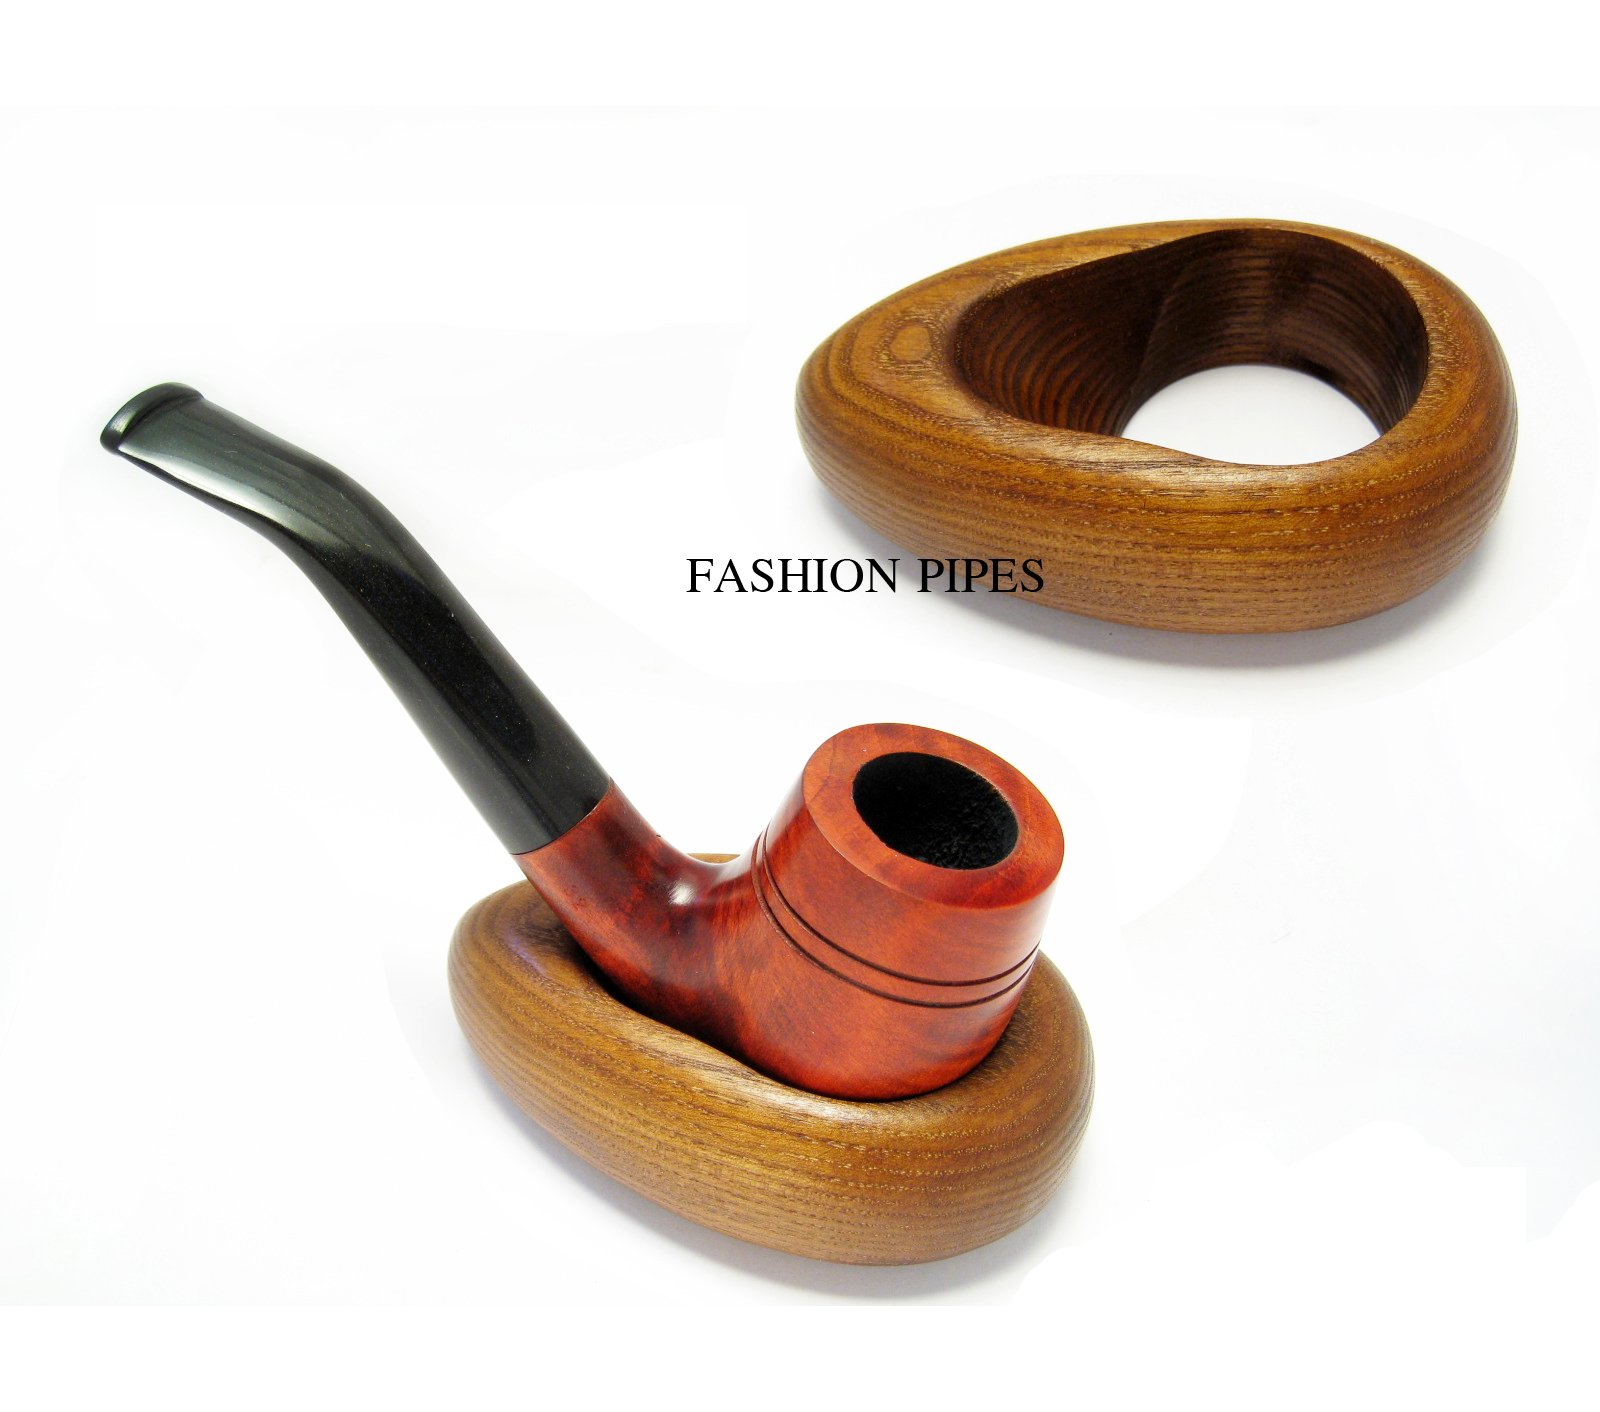 New Wooden Pipe Stand HOOP, Rack Holder for Tobacco Pipe - Smoking Pipe. Handcrafted Pipe Holder for 1 Pipe by Fashion Pipes